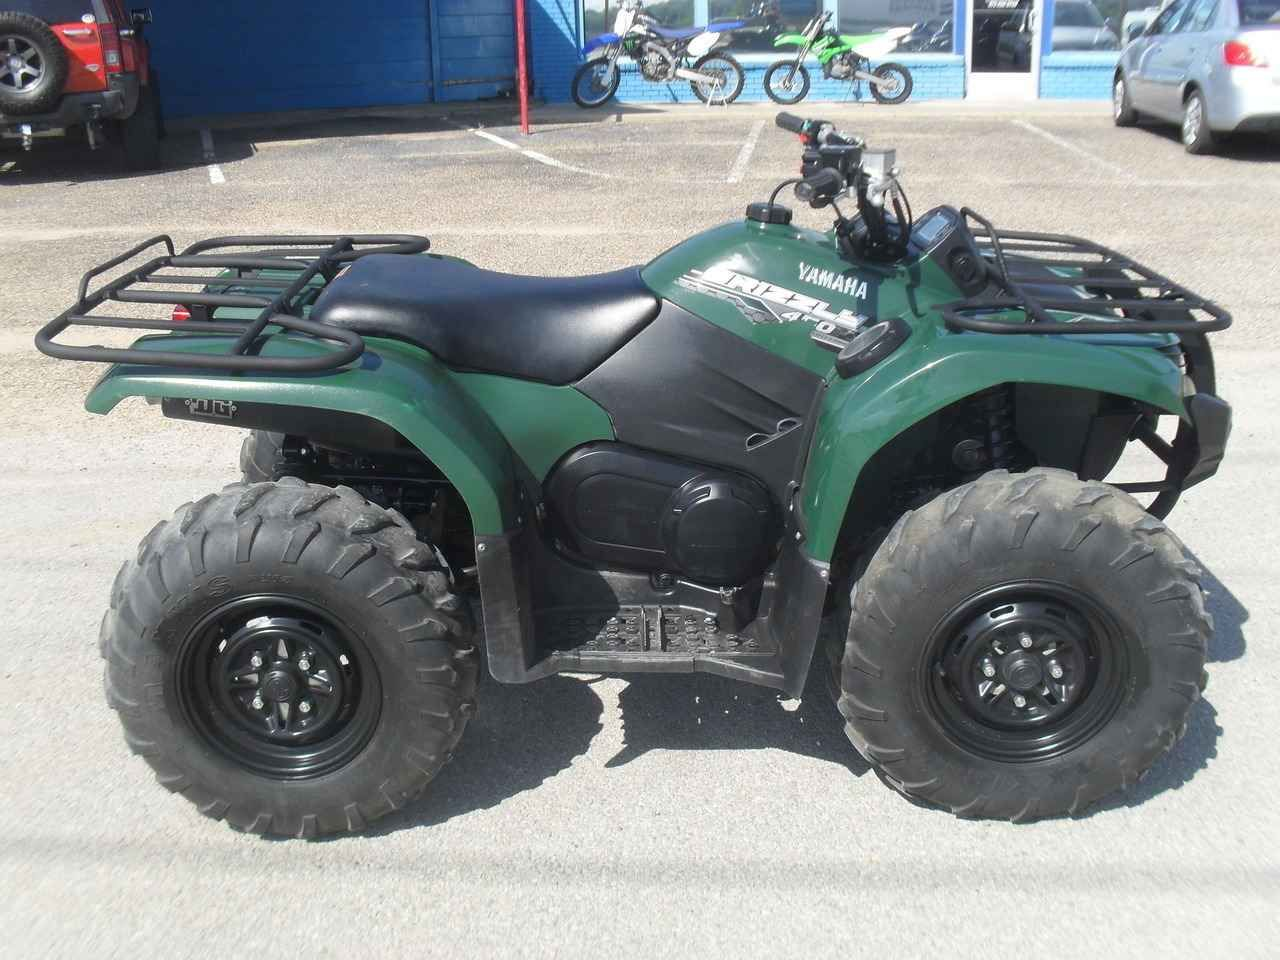 Used 2014 yamaha grizzly 450 auto 4x4 eps atvs for sale in for Used yamaha rhino 450 for sale